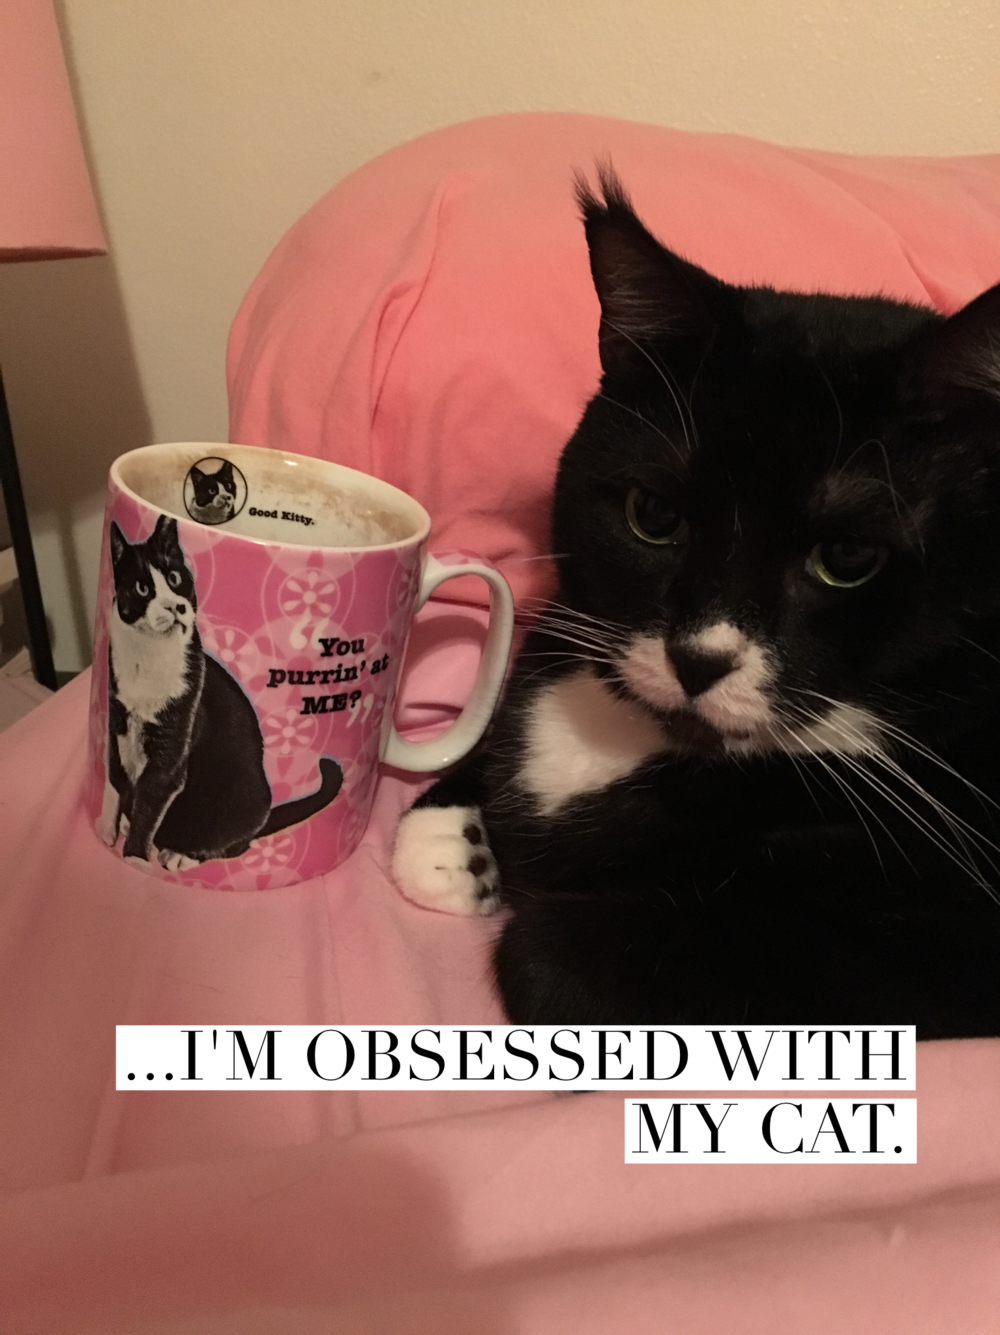 Sondheim Schwartzman Glass has lots of love to give, and enjoys tea in the mornings with a cat much like himself.